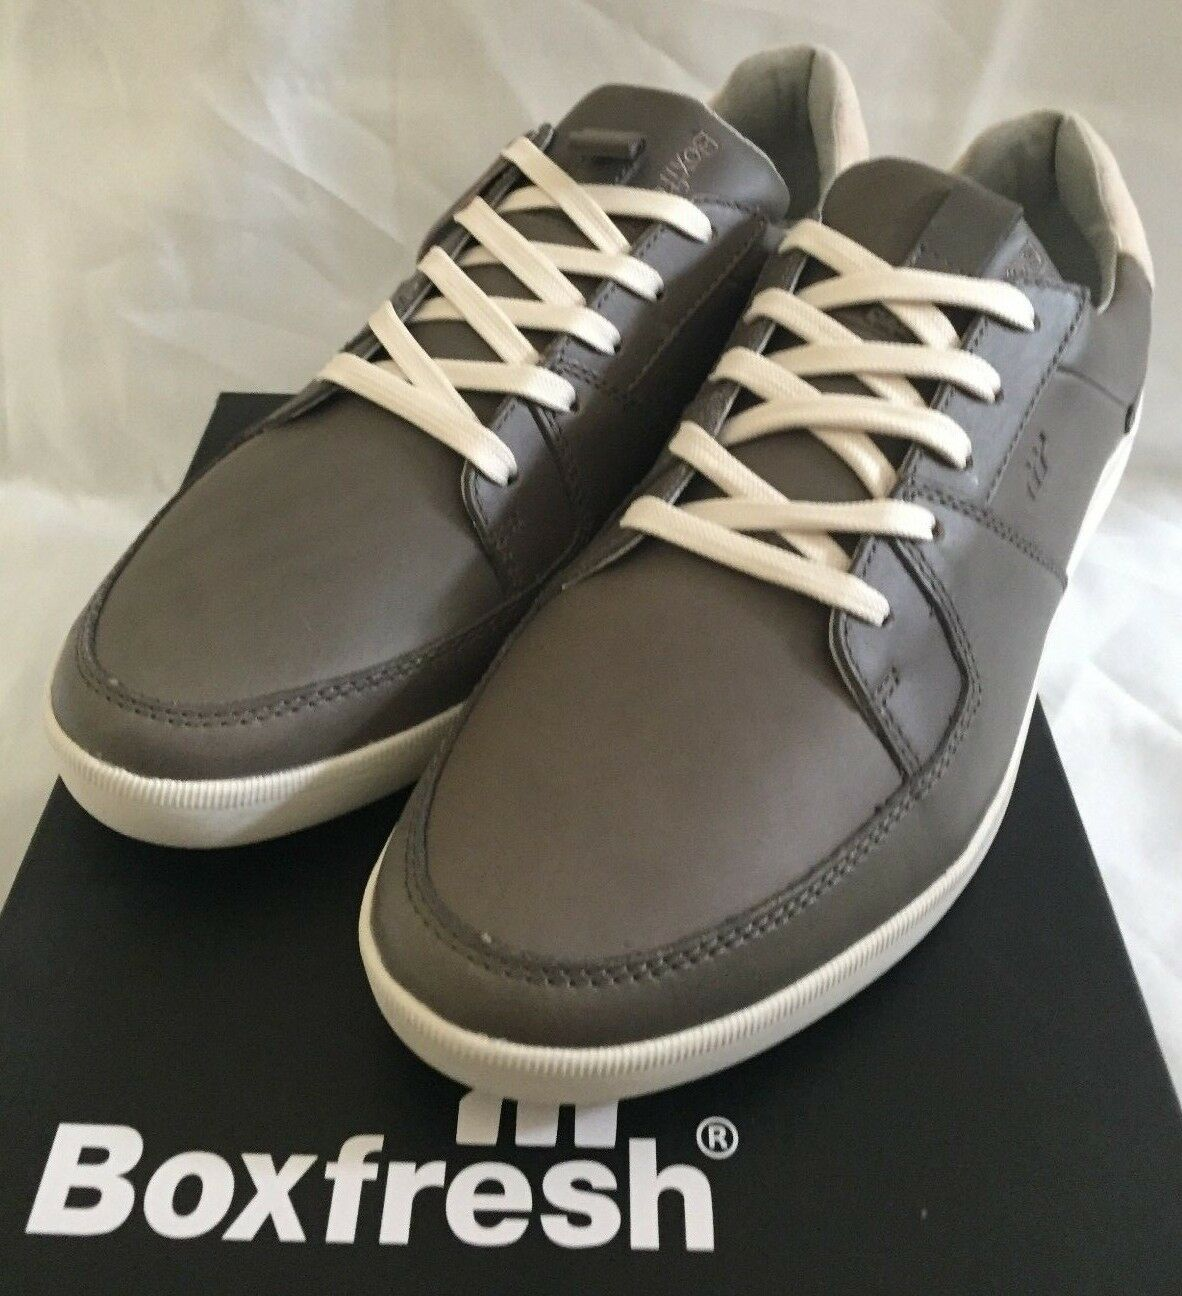 Boxfresh Cladd ICN Lea Mgry Grif Grey, Men's Trainers UK Size 10